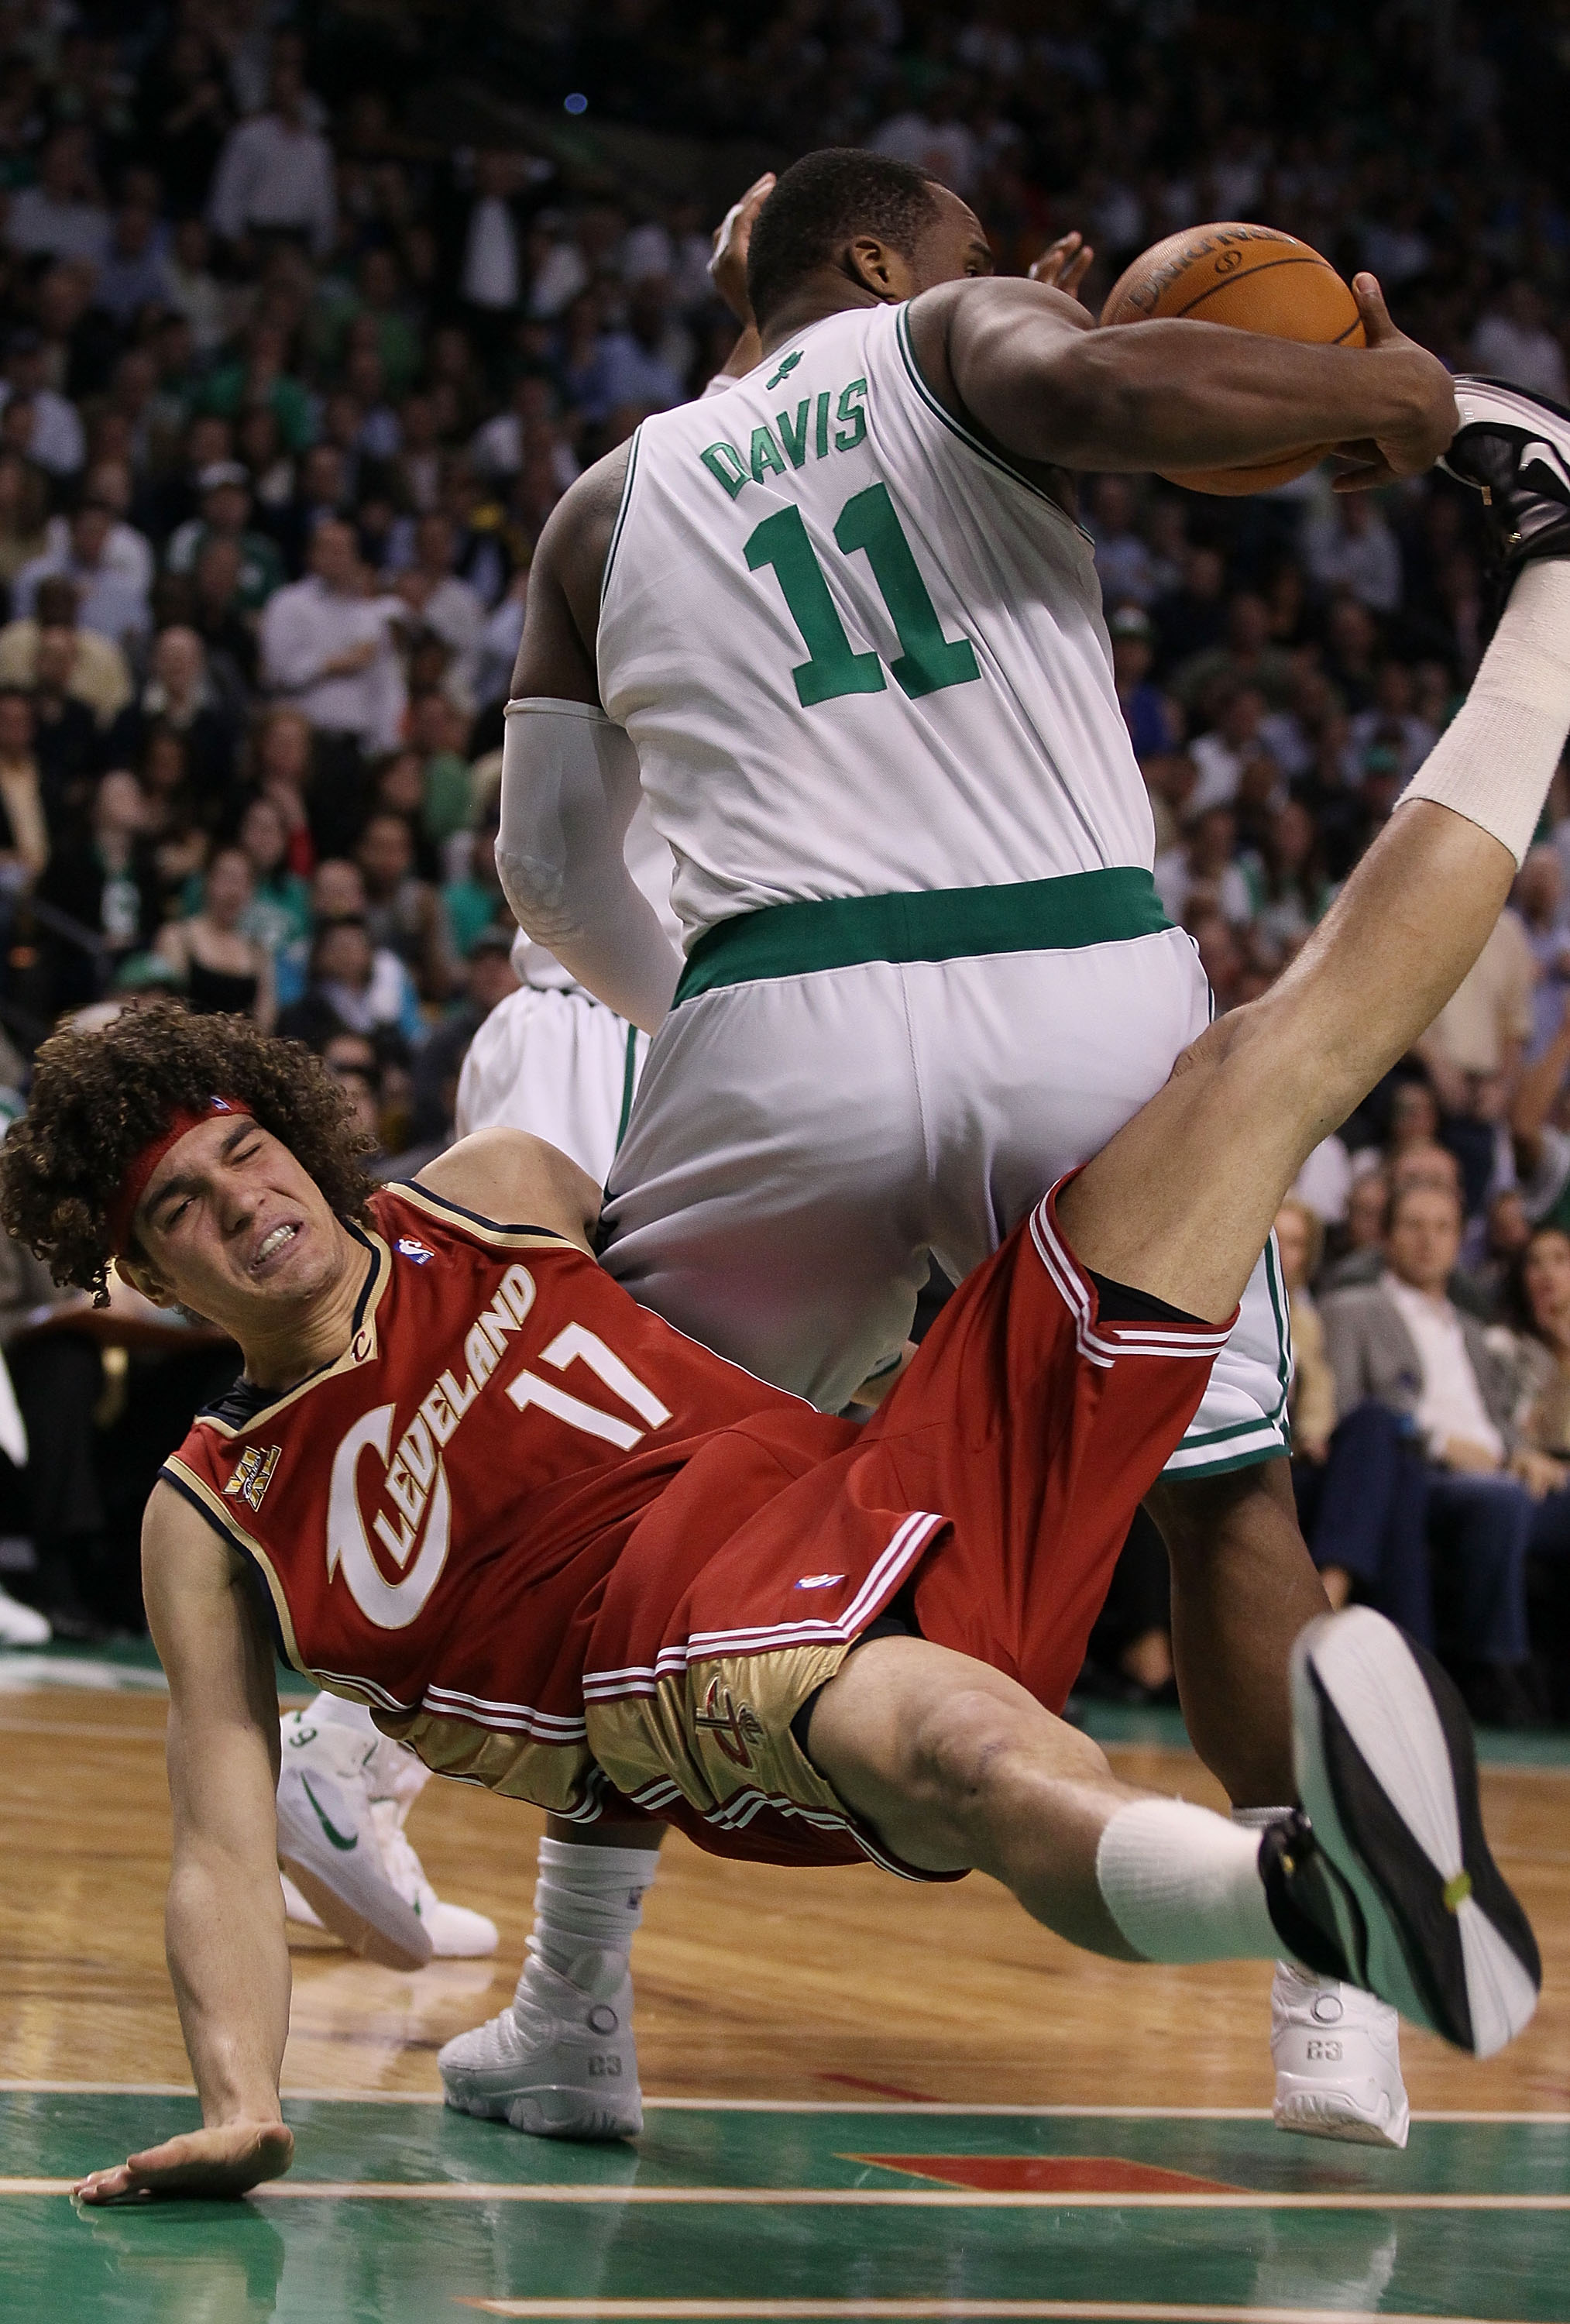 BOSTON - MAY 13:  Glen Davis #11 of the Boston Celtics is called for a loose ball foul on this play as Anderson Varejao #17 of the Cleveland Cavaliers falls to the floor during Game Six of the Eastern Conference Semifinals of the 2010 NBA playoffs at TD G